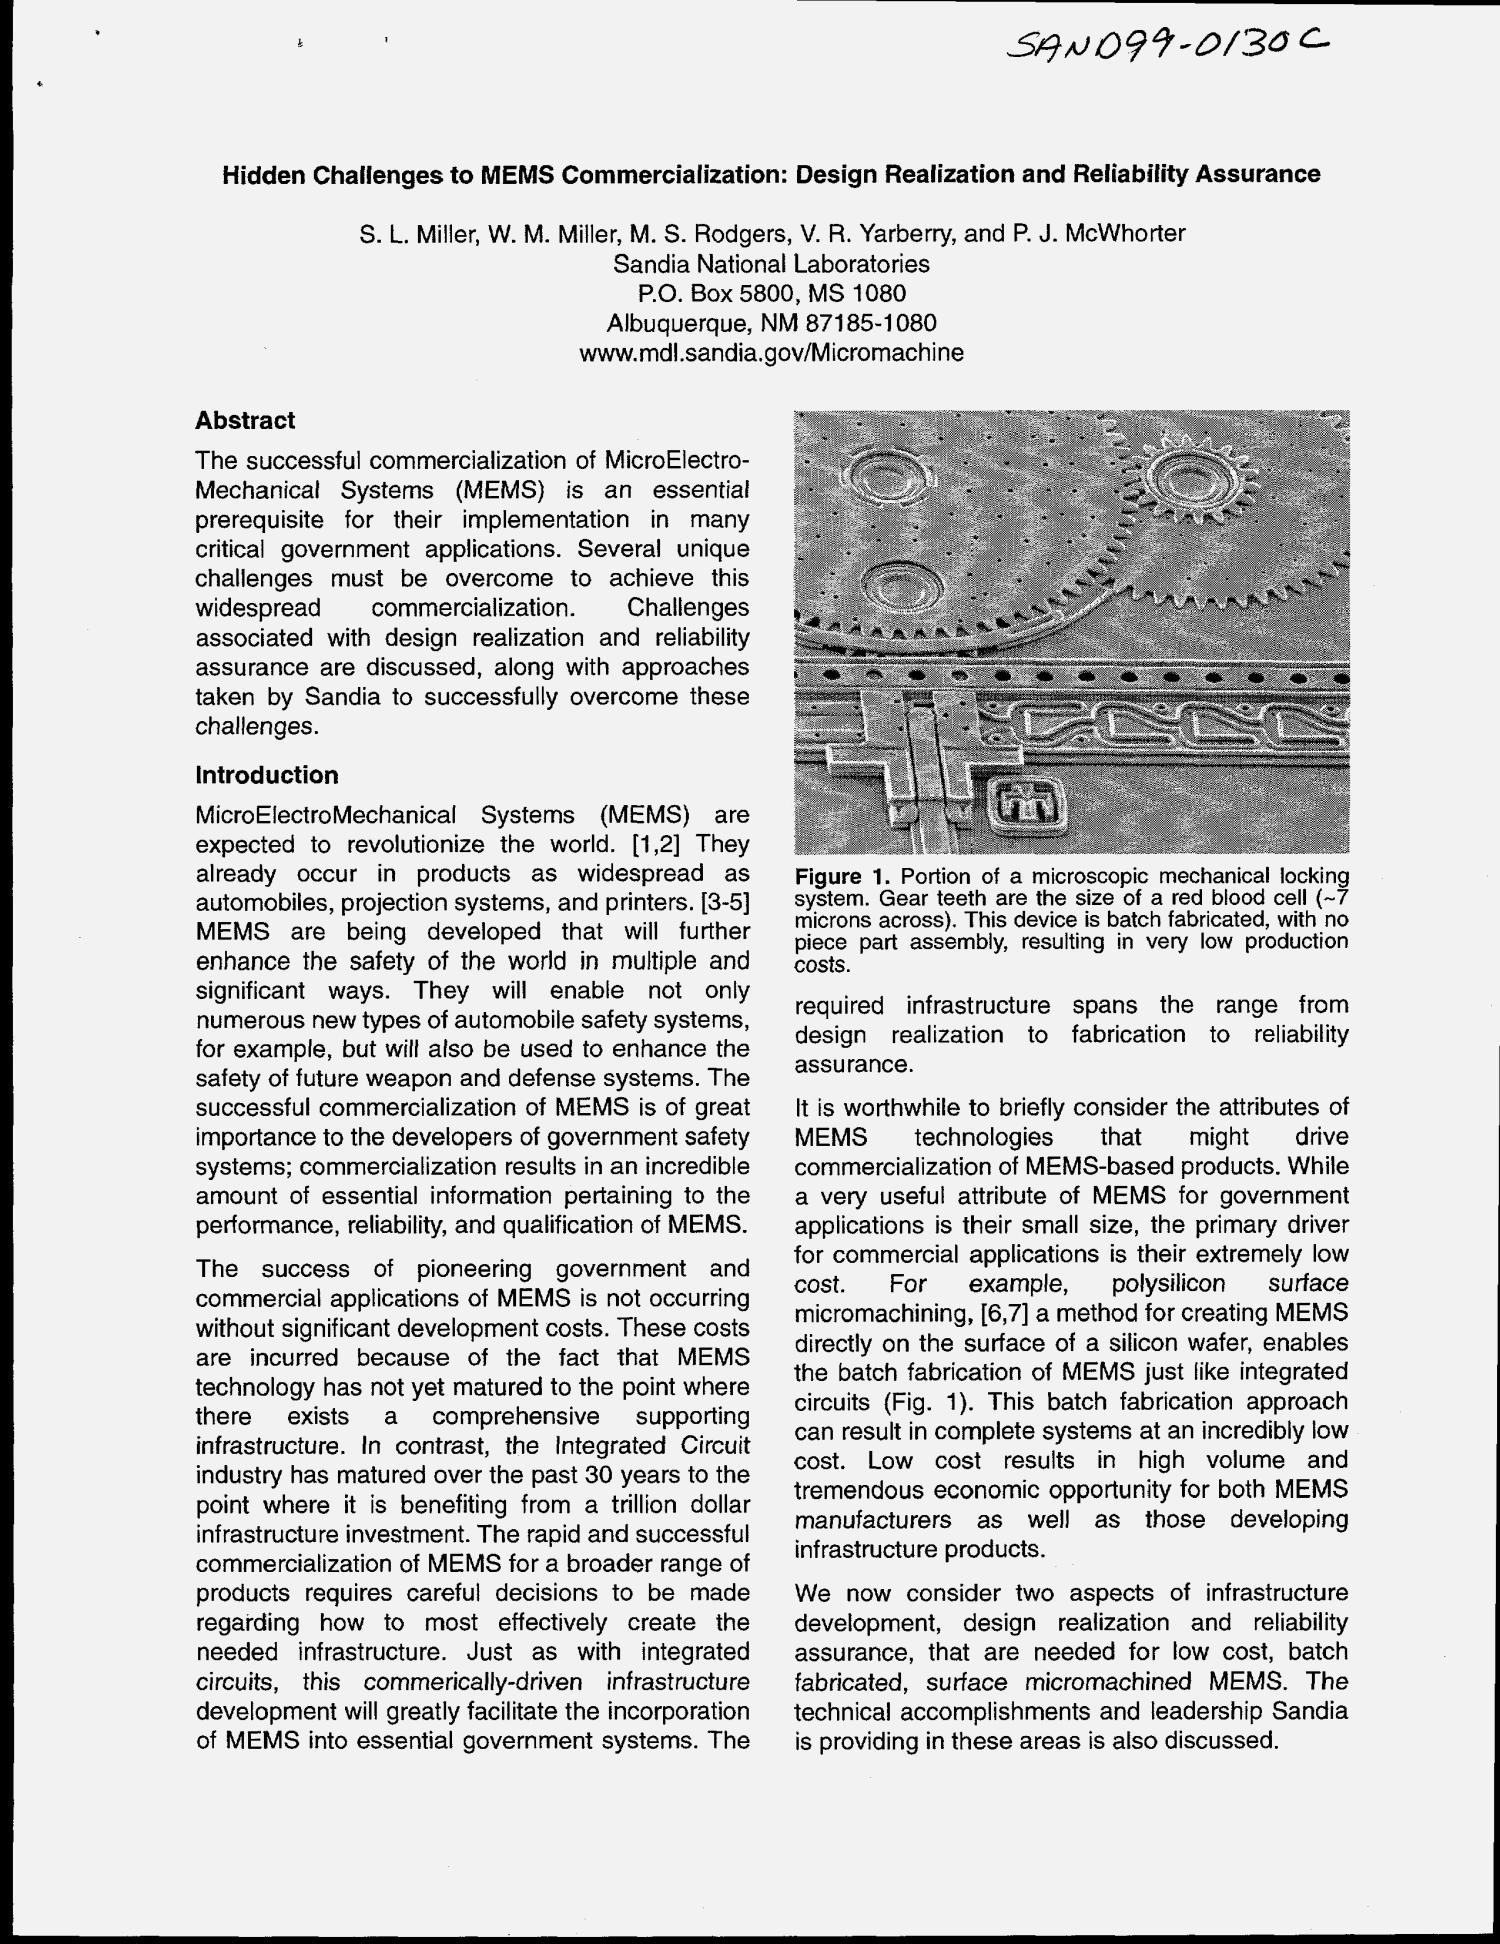 Hidden Challenges To Mems Commercialization Design Realization And Reliability Assurance Unt Digital Library